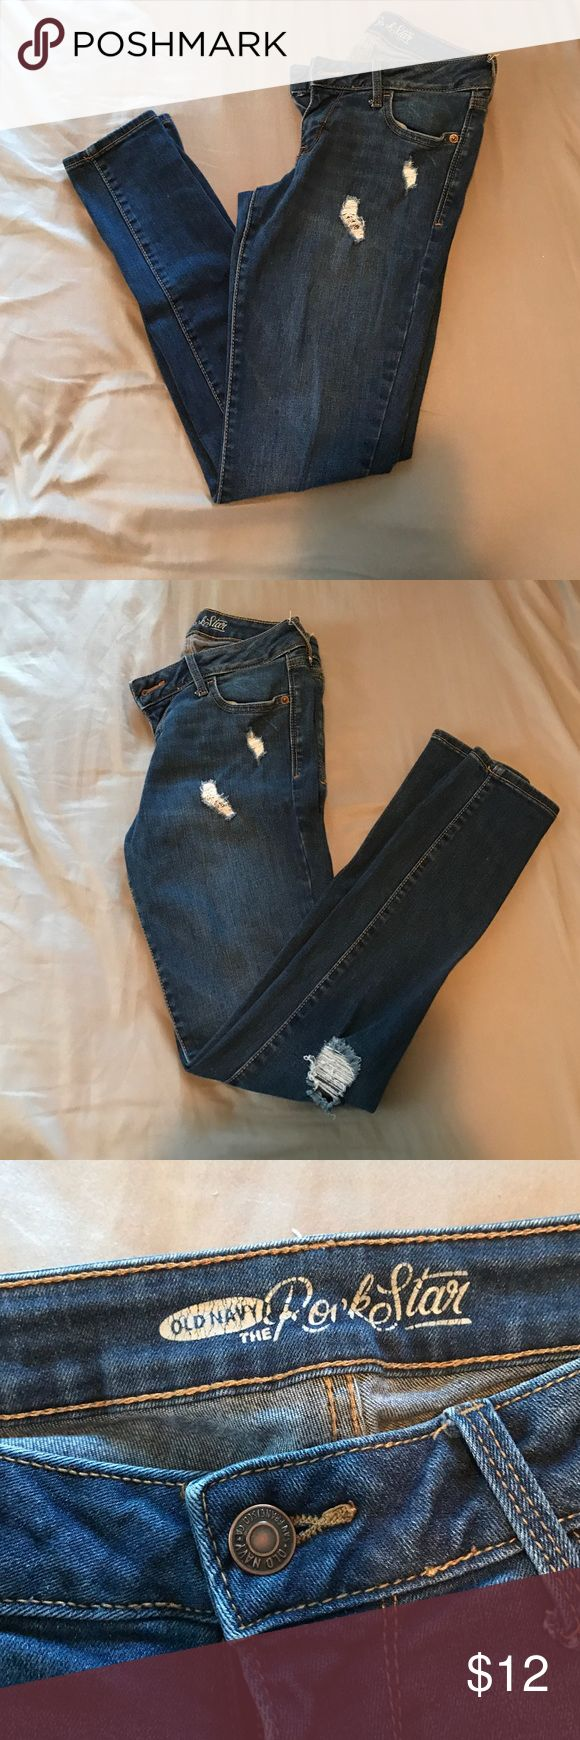 Old navy rock star jeans Old navy rockstar jeans. Worn handful of times, great condition! Old Navy Pants Skinny